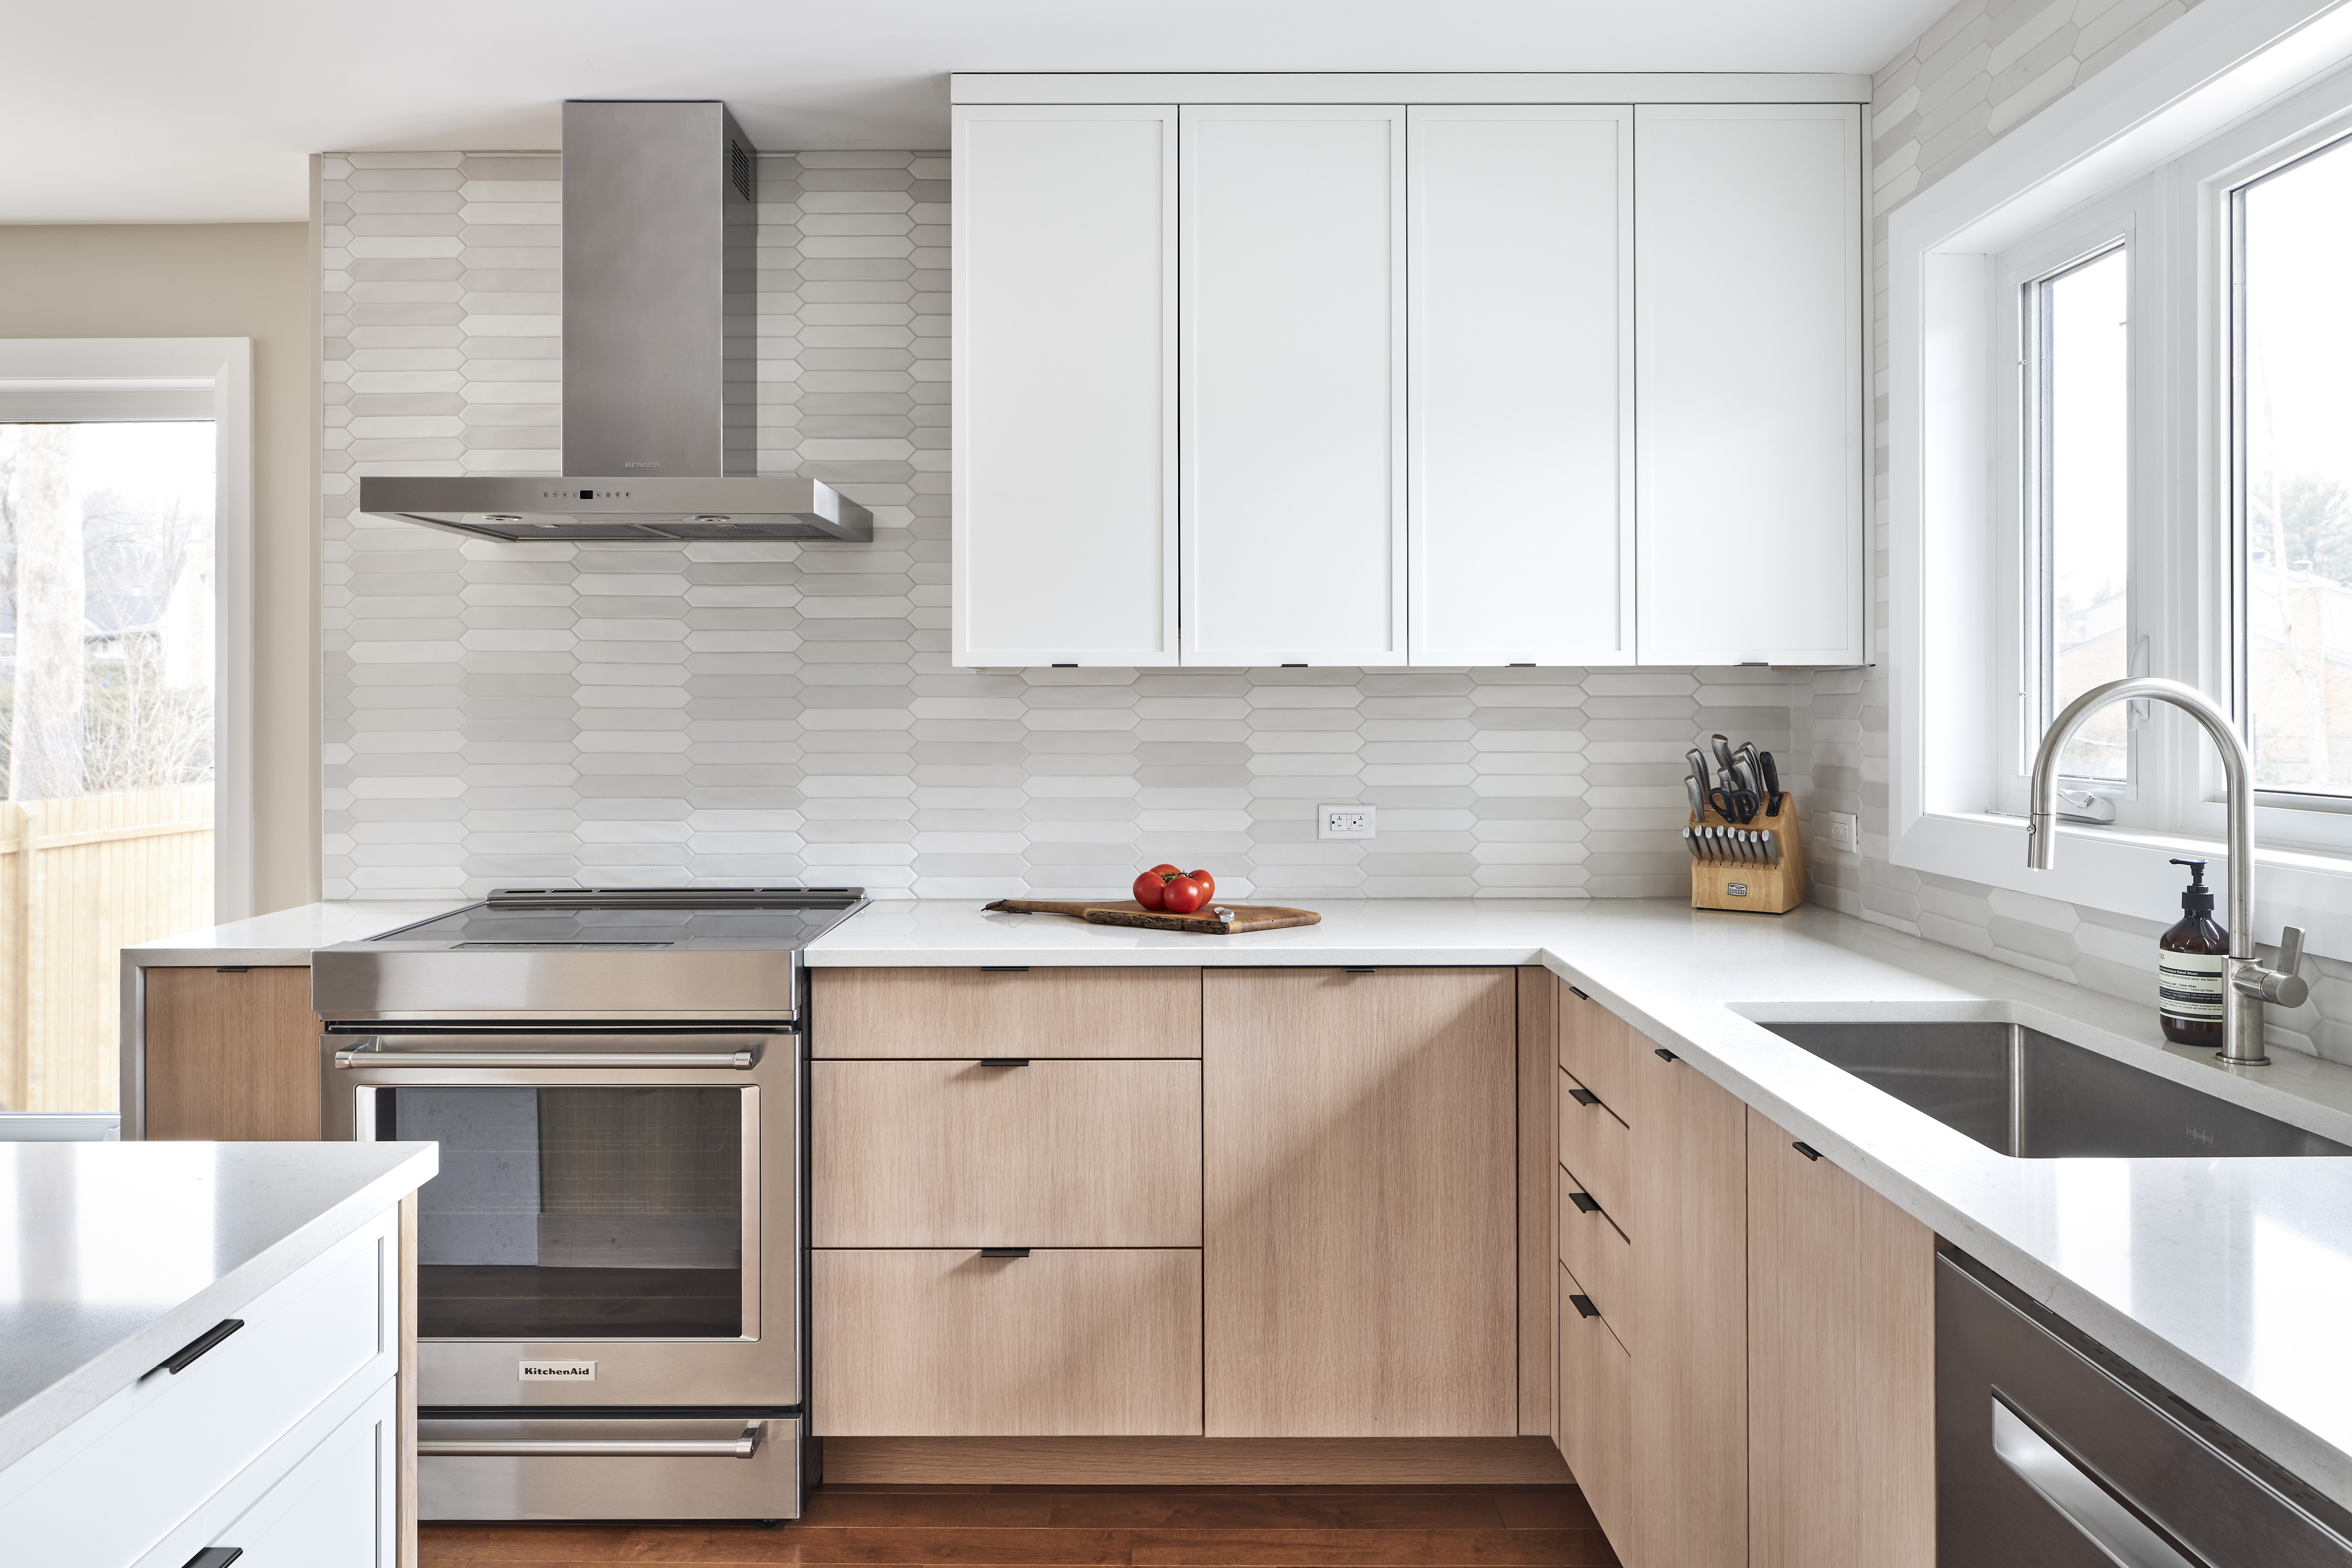 A Deslaurier design with custom cabinets painted in Wellington.